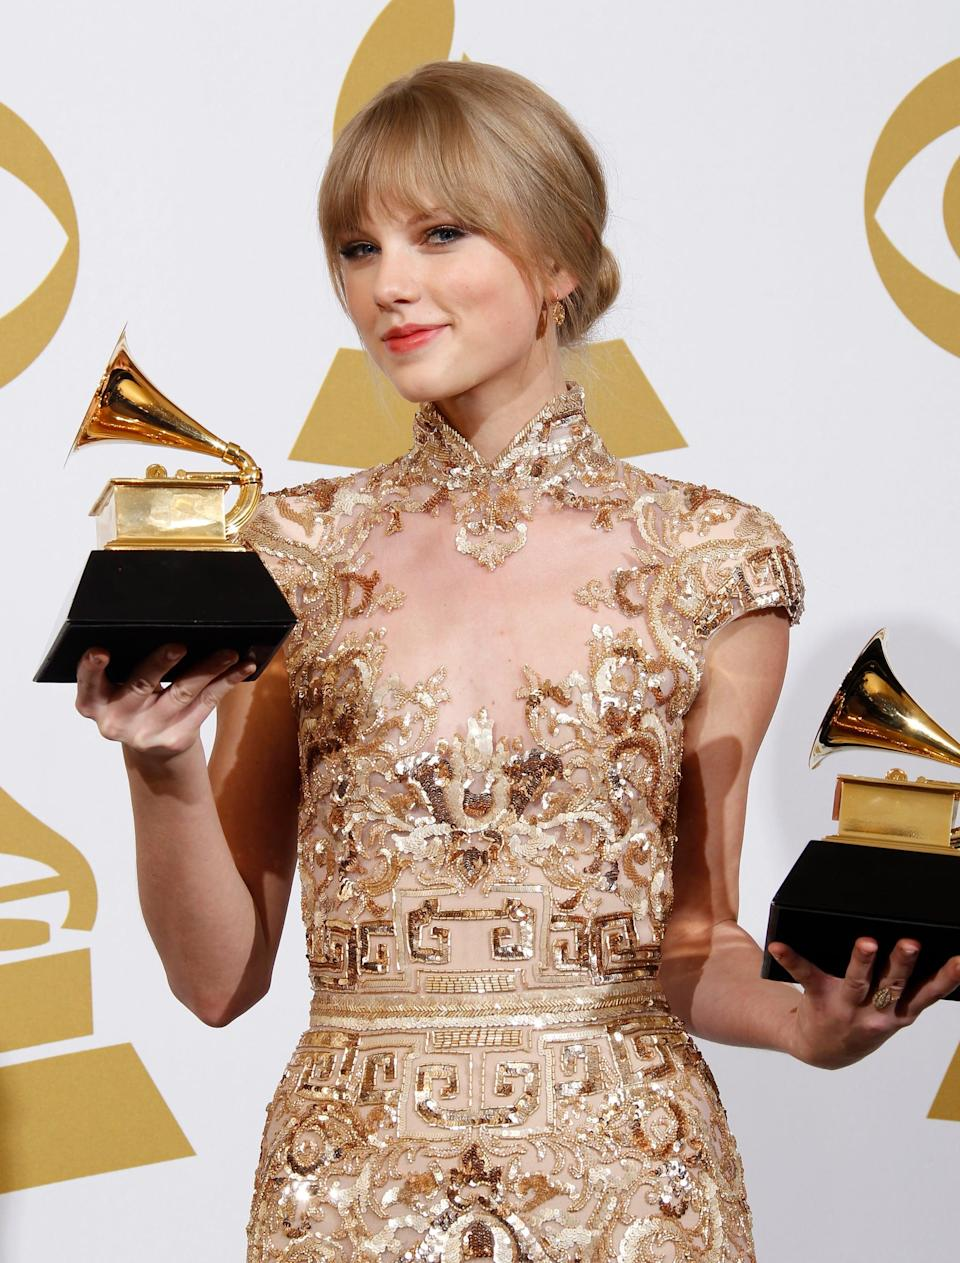 """<p><strong>Grammy nominations</strong>: 3</p> <ul> <li>Best country album, <strong>Speak Now</strong></li> <li>Best country solo performance, """"Mean""""</li> <li>Best country song, """"Mean""""</li> </ul> <p><strong>How many she won</strong>: 2; best country solo performance and best country song </p>"""